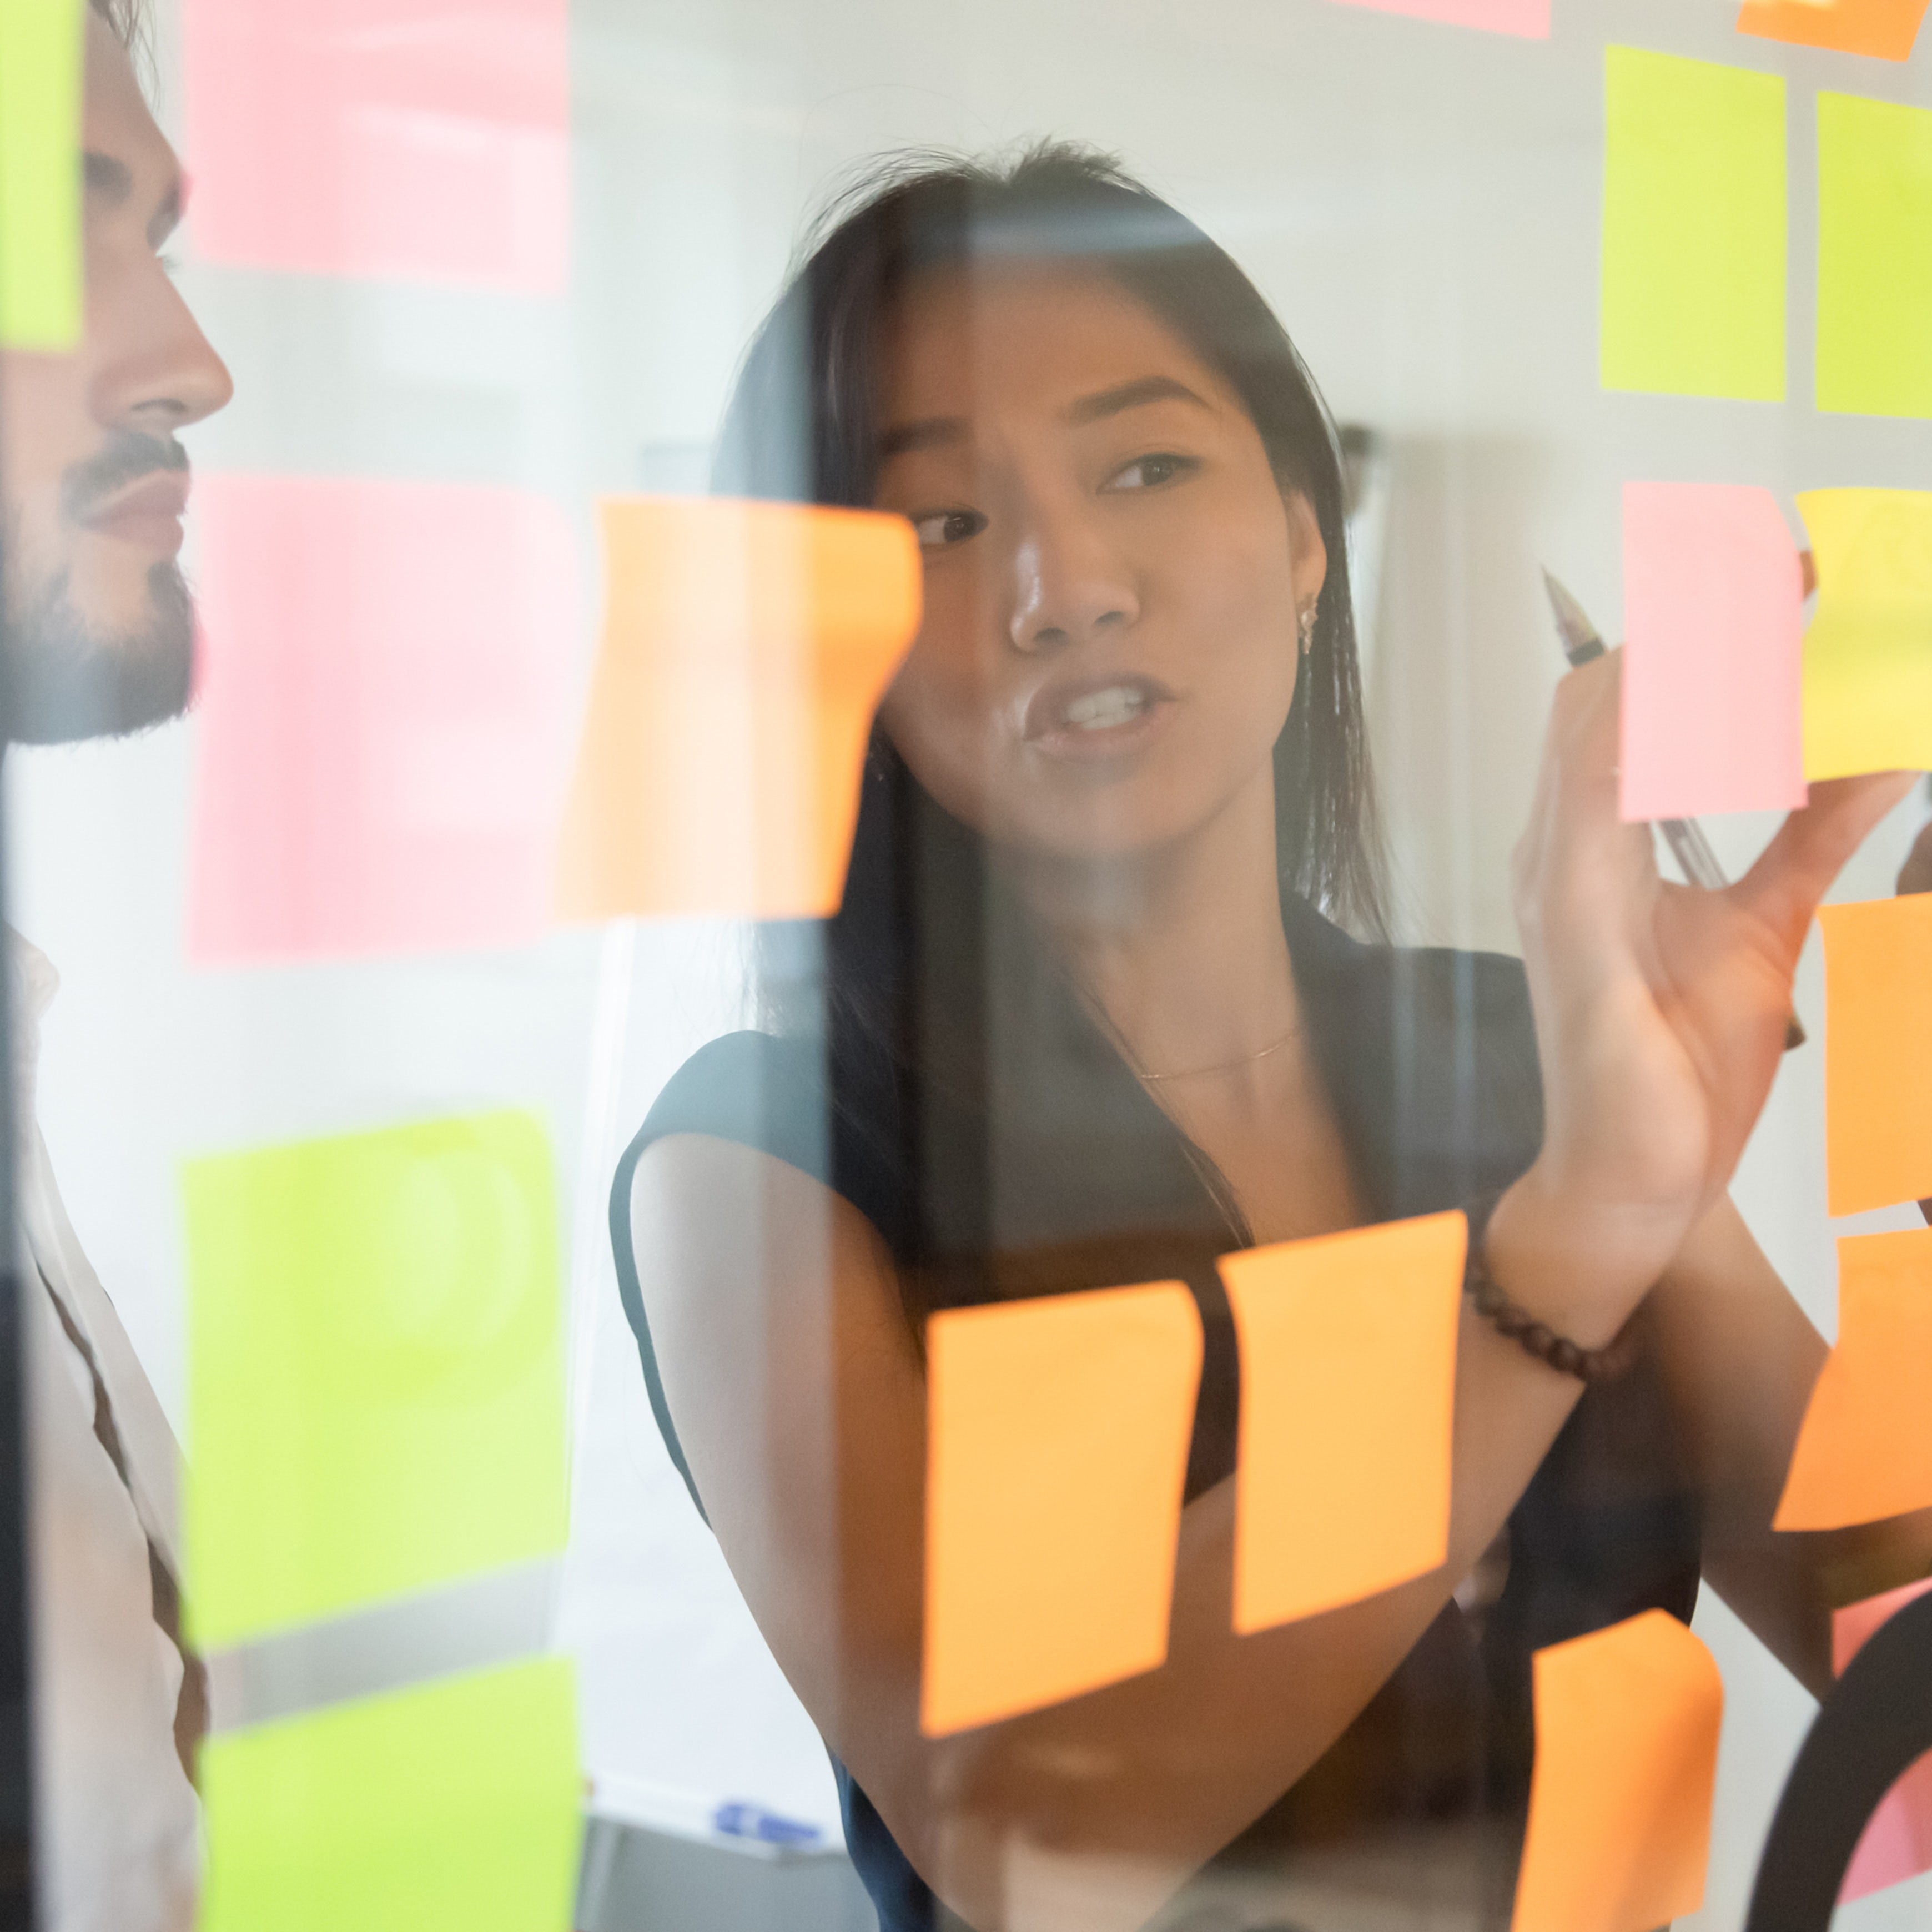 female employee putting post-its on board